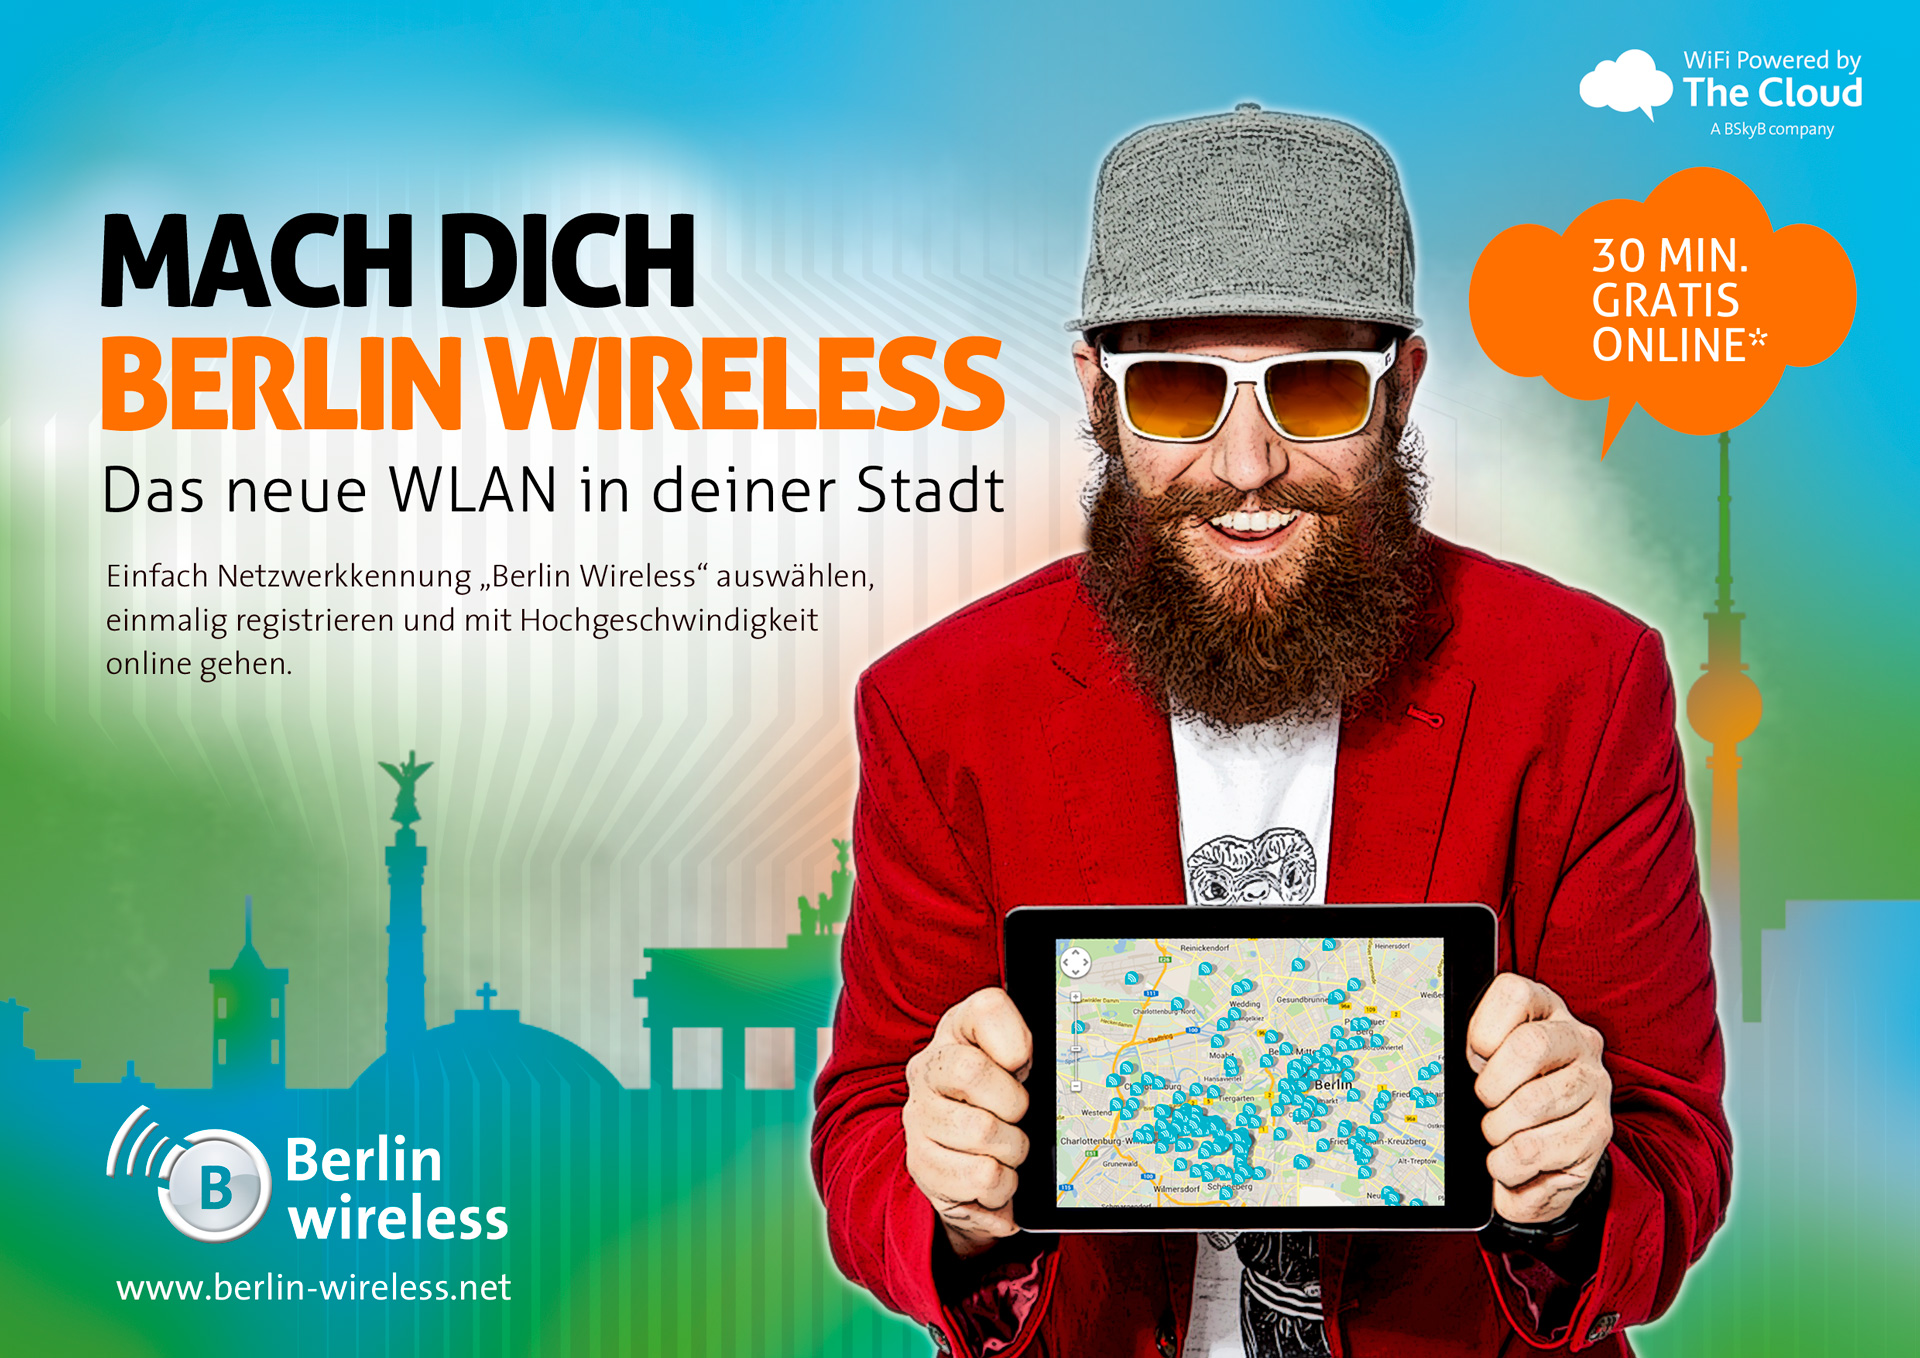 The-Cloud_Berlin-wireless-Martin-Bruss